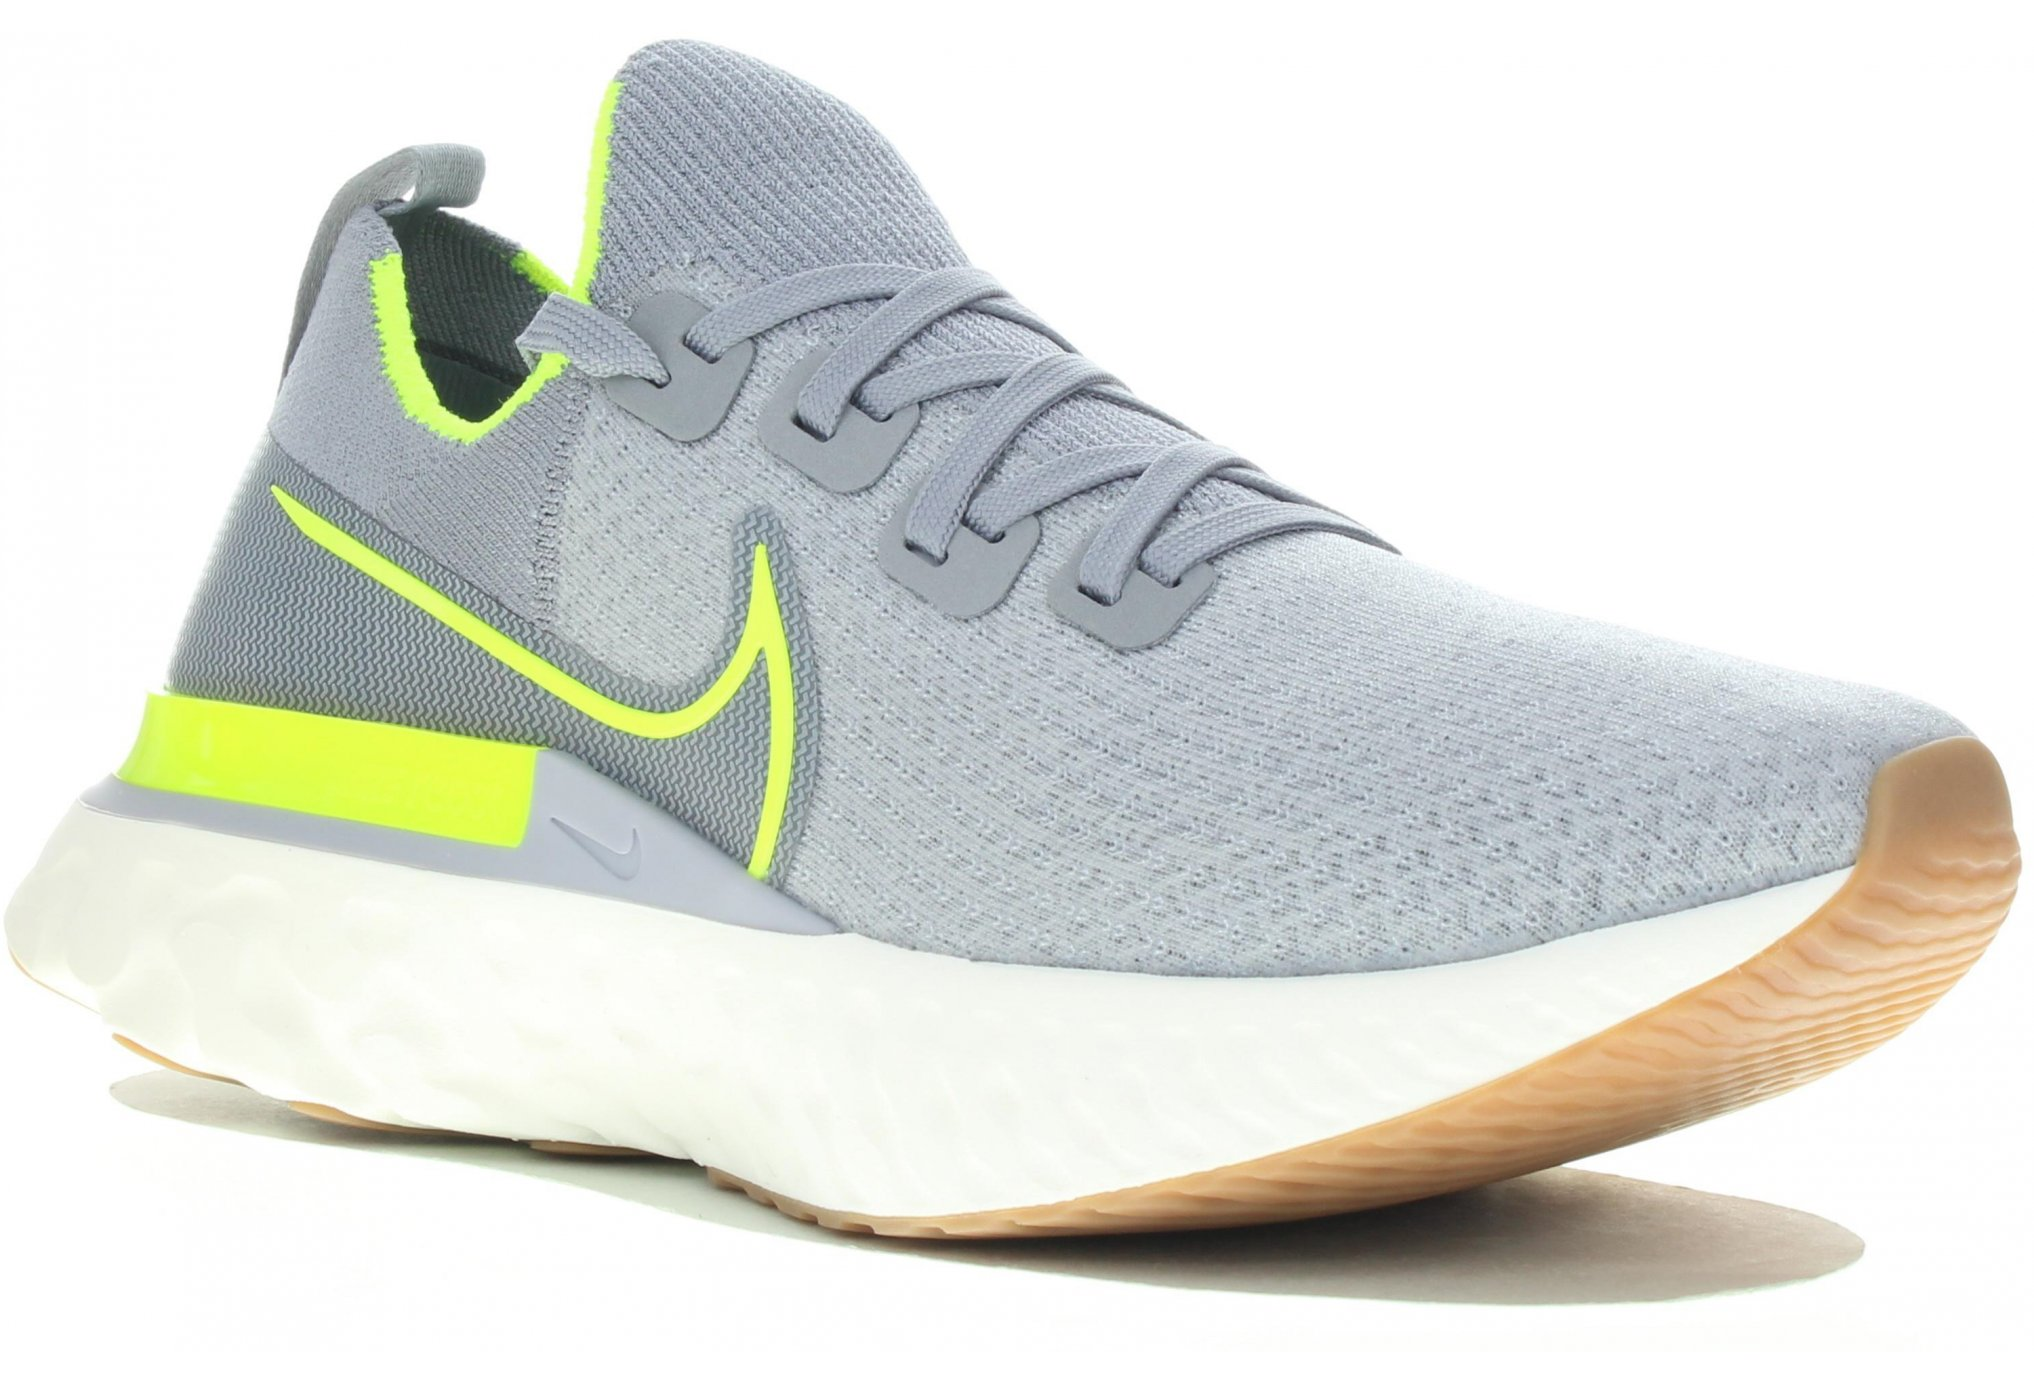 Nike React Infinity Run Flyknit Chaussures homme